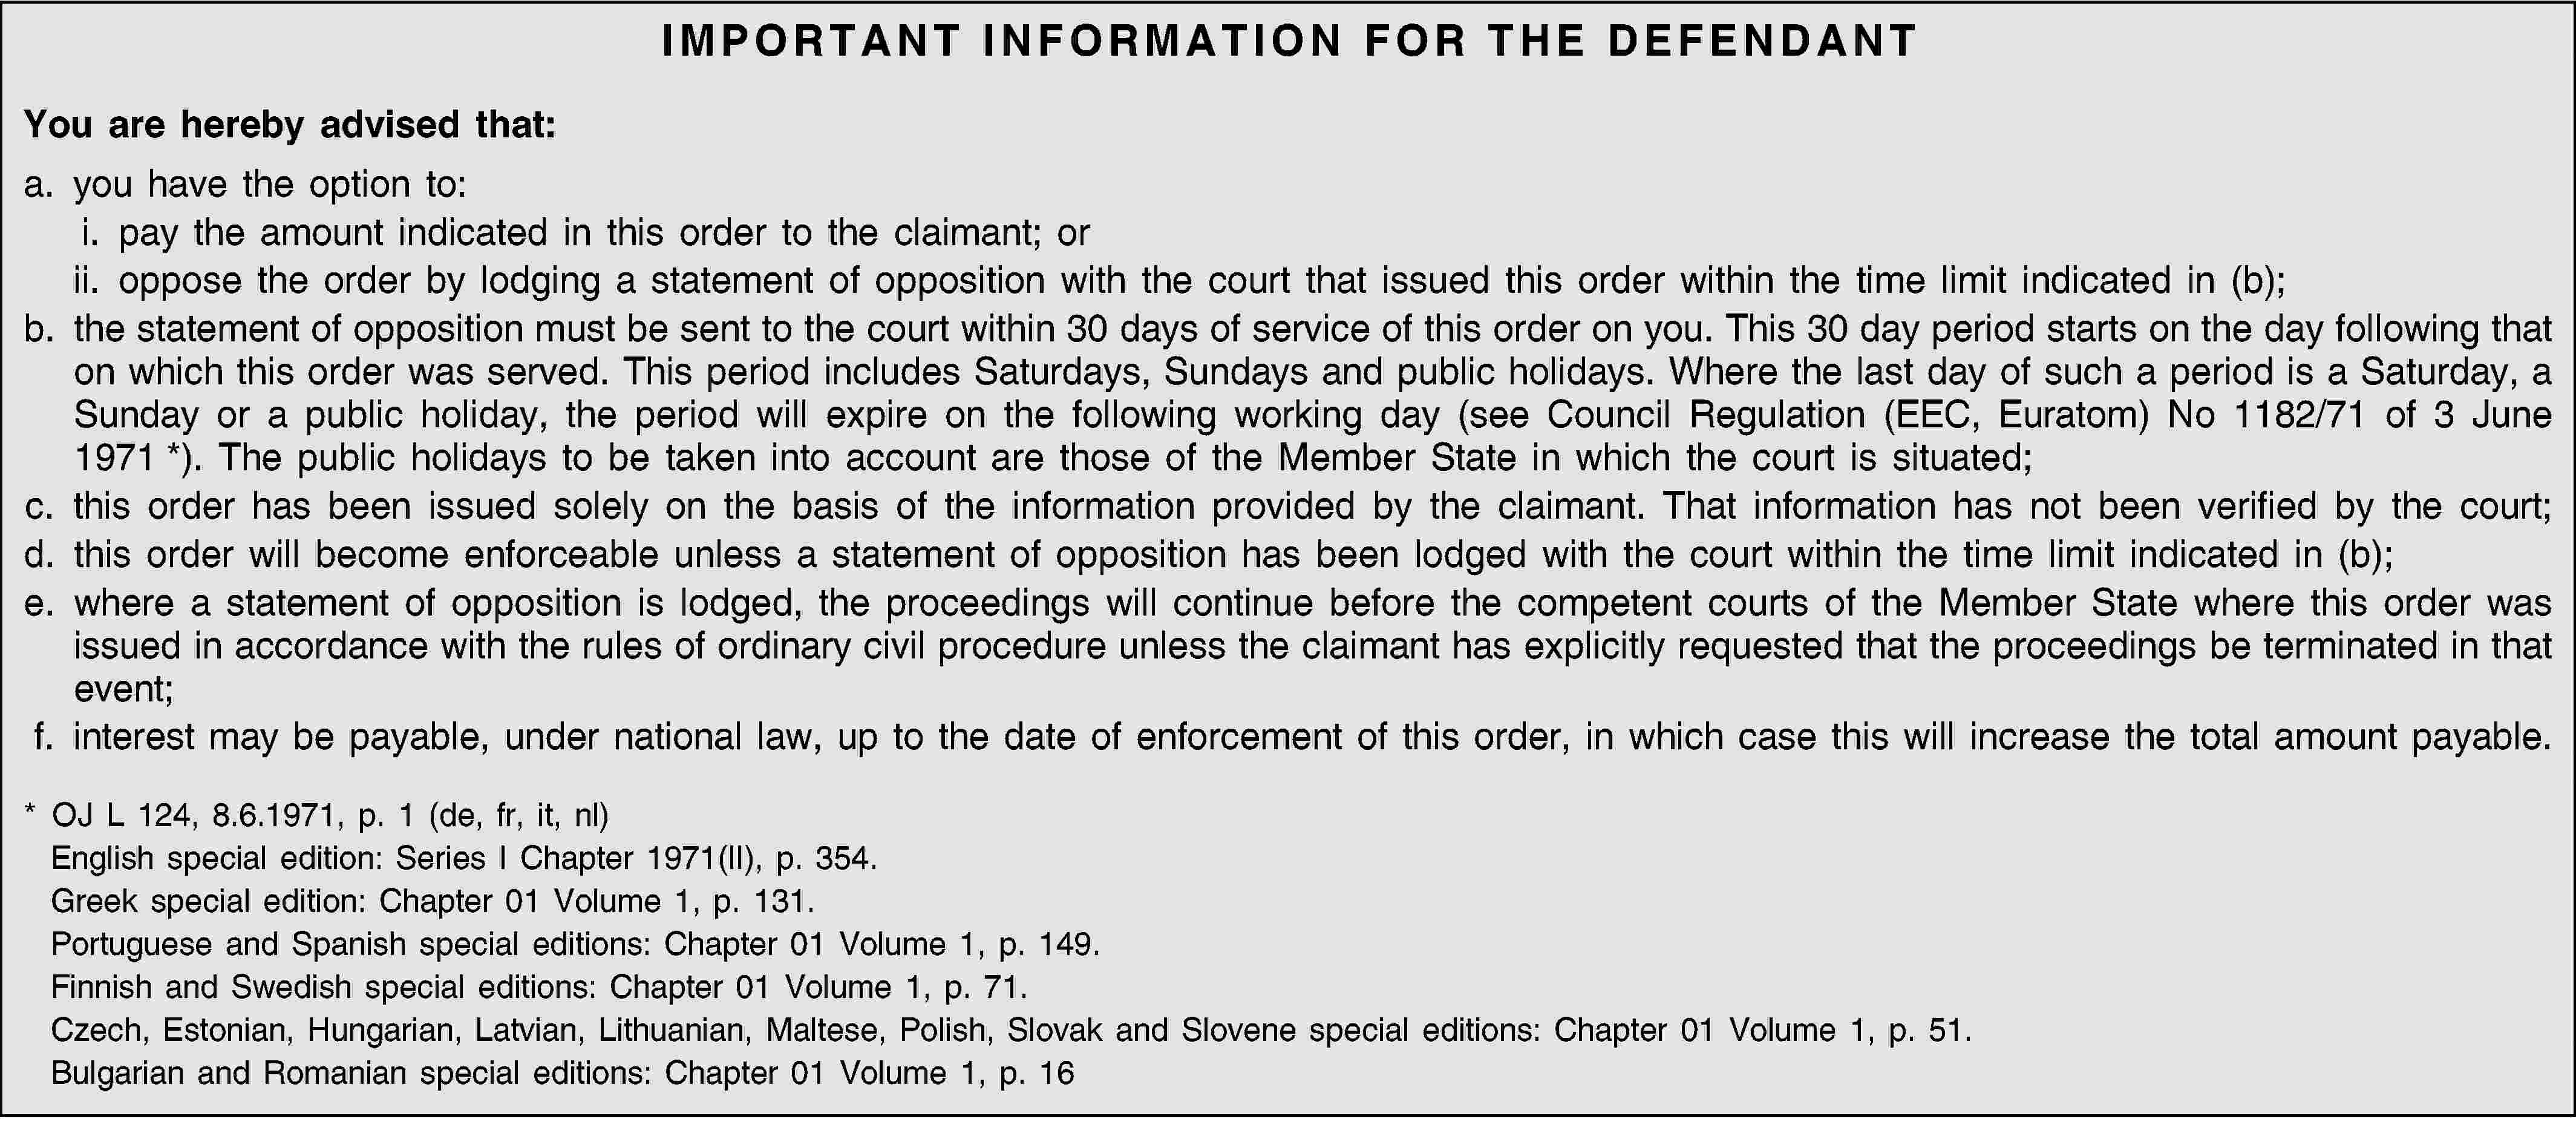 IMPORTANT INFORMATION FOR THE DEFENDANTYou are hereby advised that:a. you have the option to:i. pay the amount indicated in this order to the claimant; orii. oppose the order by lodging a statement of opposition with the court that issued this order within the time limit indicated in (b);b. the statement of opposition must be sent to the court within 30 days of service of this order on you. This 30 day period starts on the day following that on which this order was served. This period includes Saturdays, Sundays and public holidays. Where the last day of such a period is a Saturday, a Sunday or a public holiday, the period will expire on the following working day (see Council Regulation (EEC, Euratom) No 1182/71 of 3 June 1971 *). The public holidays to be taken into account are those of the Member State in which the court is situated;c. this order has been issued solely on the basis of the information provided by the claimant. That information has not been verified by the court;d. this order will become enforceable unless a statement of opposition has been lodged with the court within the time limit indicated in (b);e. where a statement of opposition is lodged, the proceedings will continue before the competent courts of the Member State where this order was issued in accordance with the rules of ordinary civil procedure unless the claimant has explicitly requested that the proceedings be terminated in that event;f. interest may be payable, under national law, up to the date of enforcement of this order, in which case this will increase the total amount payable.* OJ L 124, 8.6.1971, p. 1 (de, fr, it, nl)English special edition: Series I Chapter 1971(II), p. 354.Greek special edition: Chapter 01 Volume 1, p. 131.Portuguese and Spanish special editions: Chapter 01 Volume 1, p. 149.Finnish and Swedish special editions: Chapter 01 Volume 1, p. 71.Czech, Estonian, Hungarian, Latvian, Lithuanian, Maltese, Polish, Slovak and Slovene special editions: Chapter 01 Volume 1, p. 51.Bulgarian and Romanian special editions: Chapter 01 Volume 1, p. 16